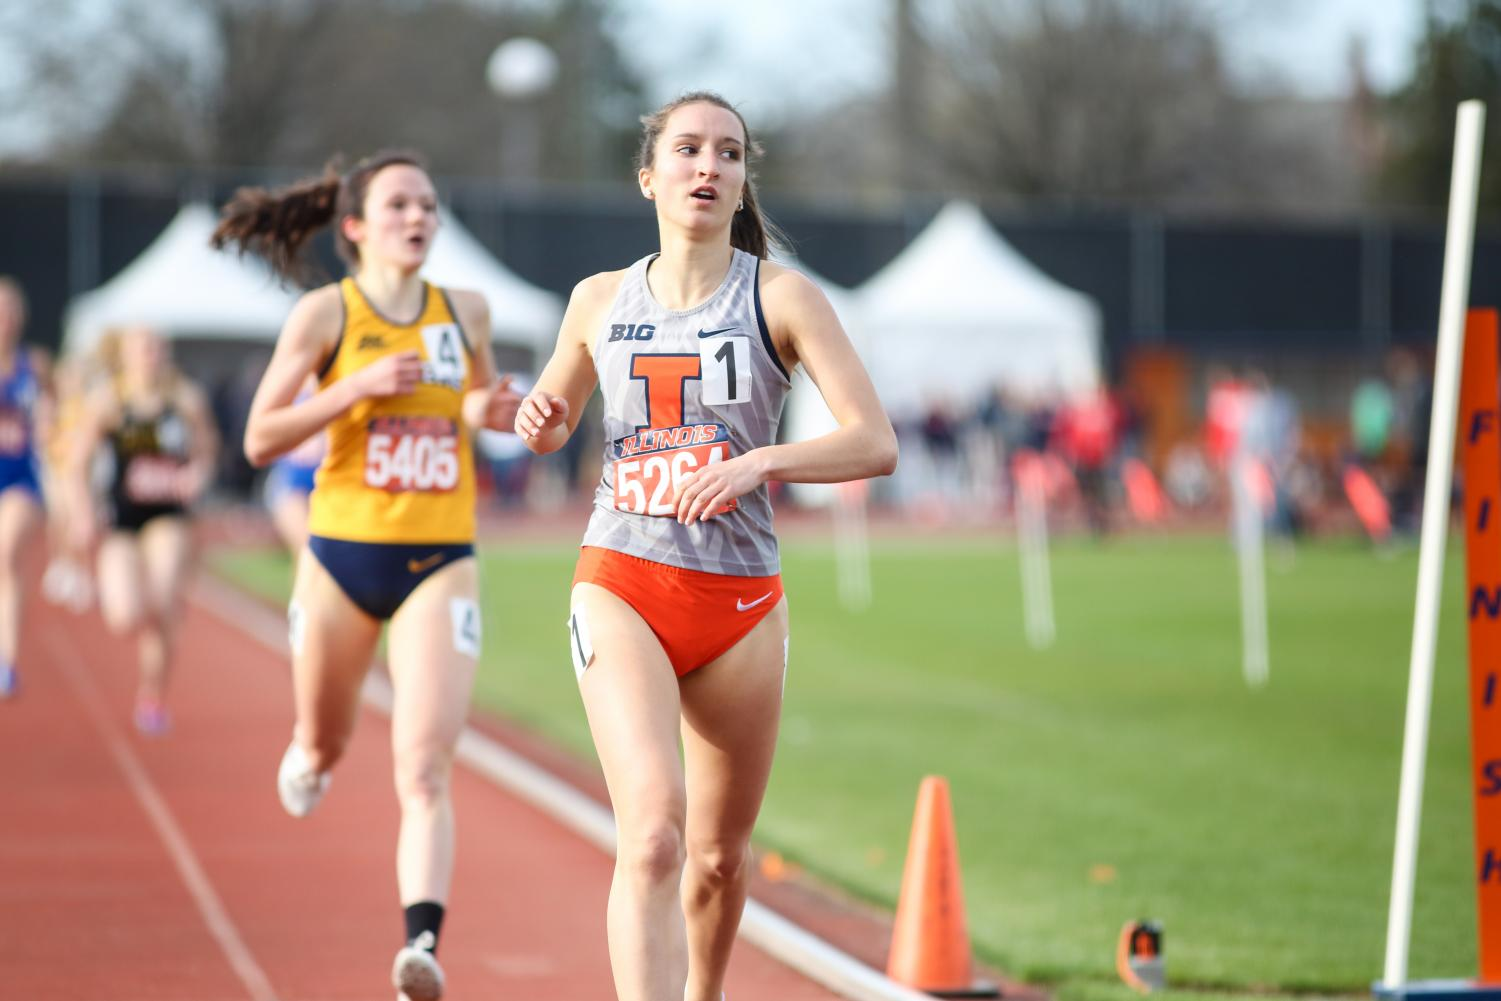 Lauren Katz runs the 1,500-meter at the Illinois Track Stadium on Saturday. Katz finished in fifth place.